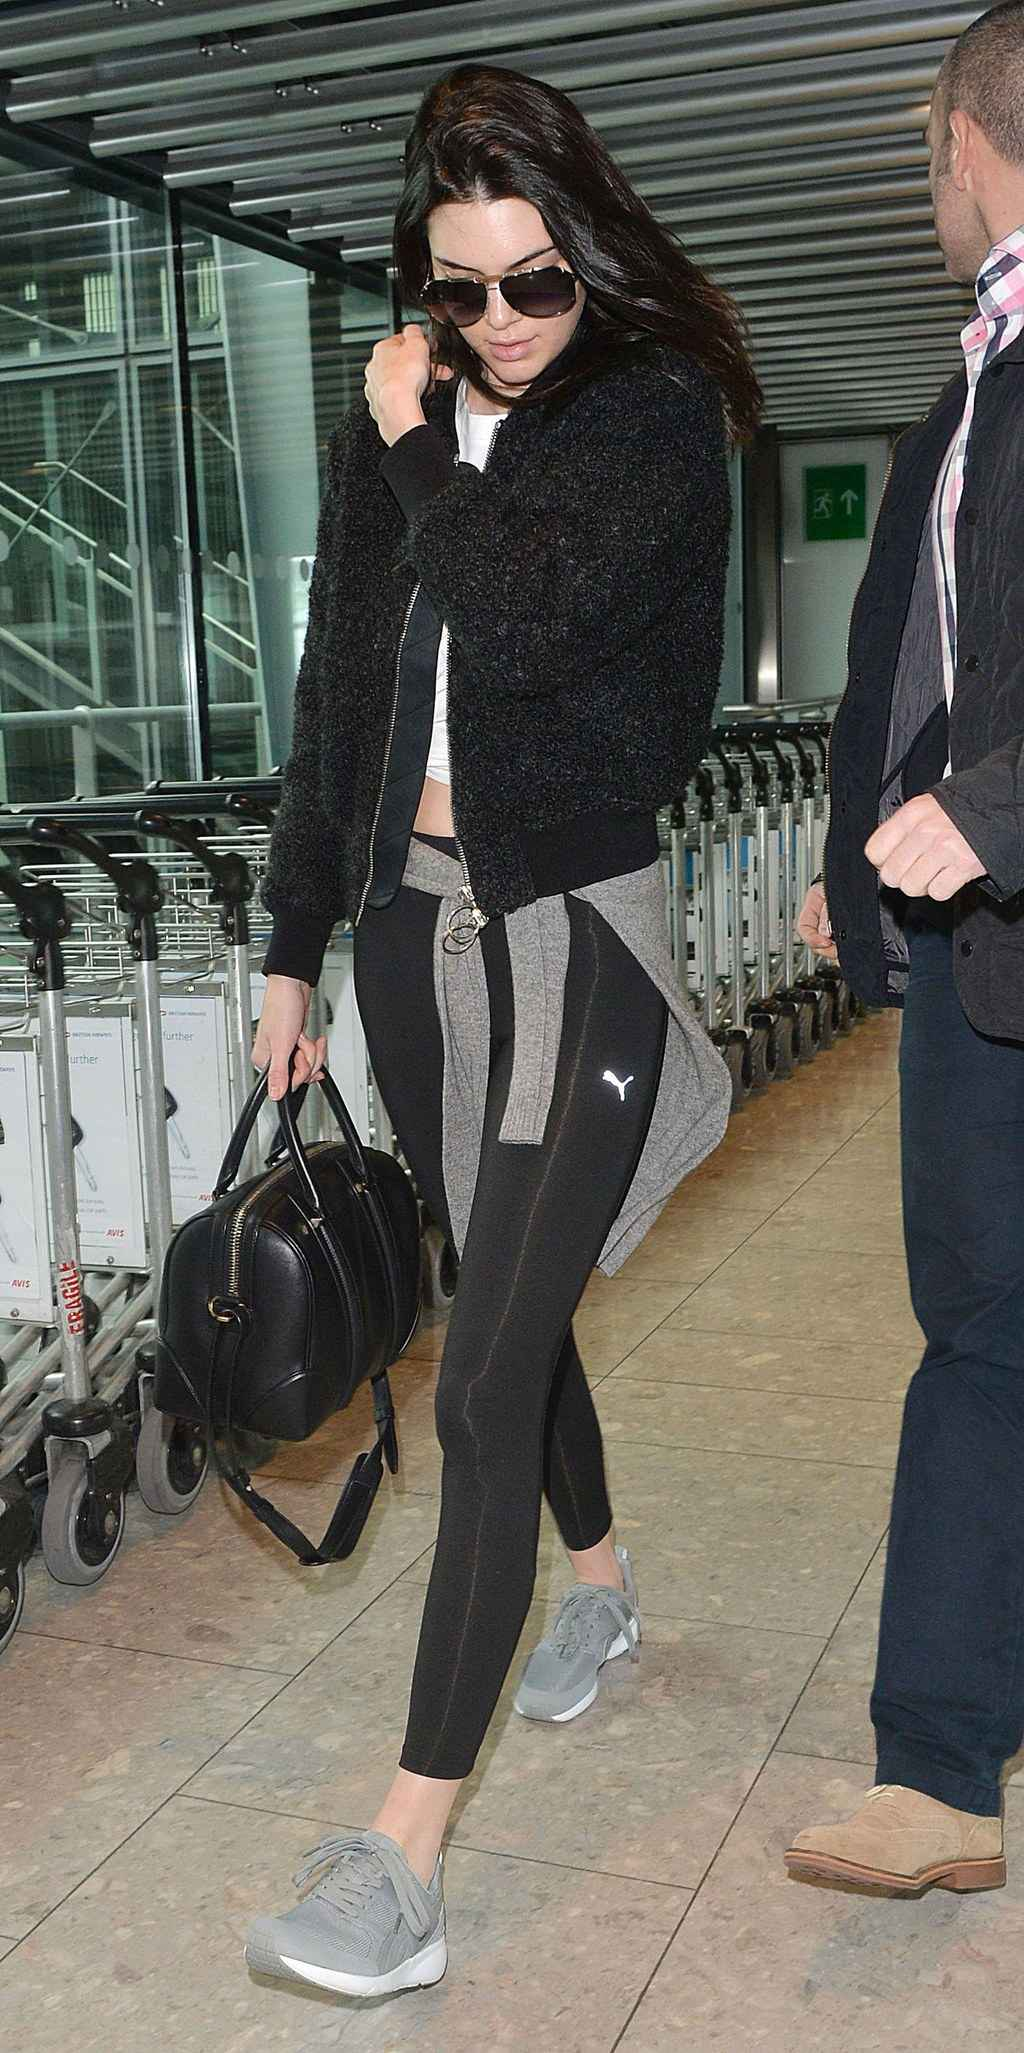 fashion-2015-07-kendall-jenner-workout-clothes-airport-outfit-style-main